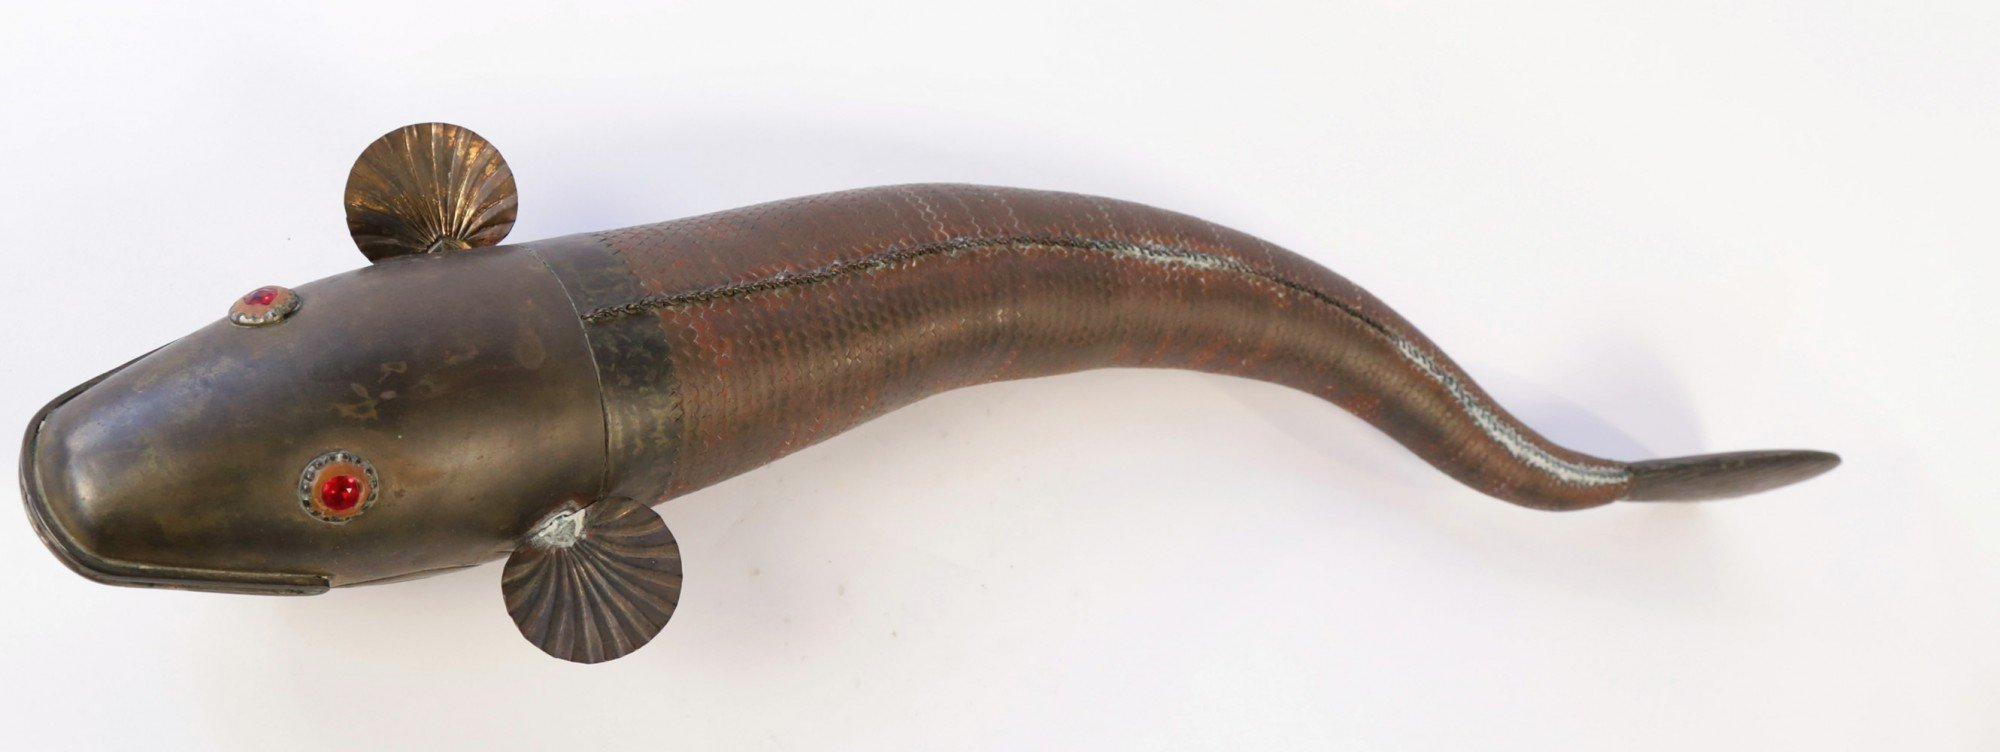 Persian Brass Articulated Fish by 20th Century School